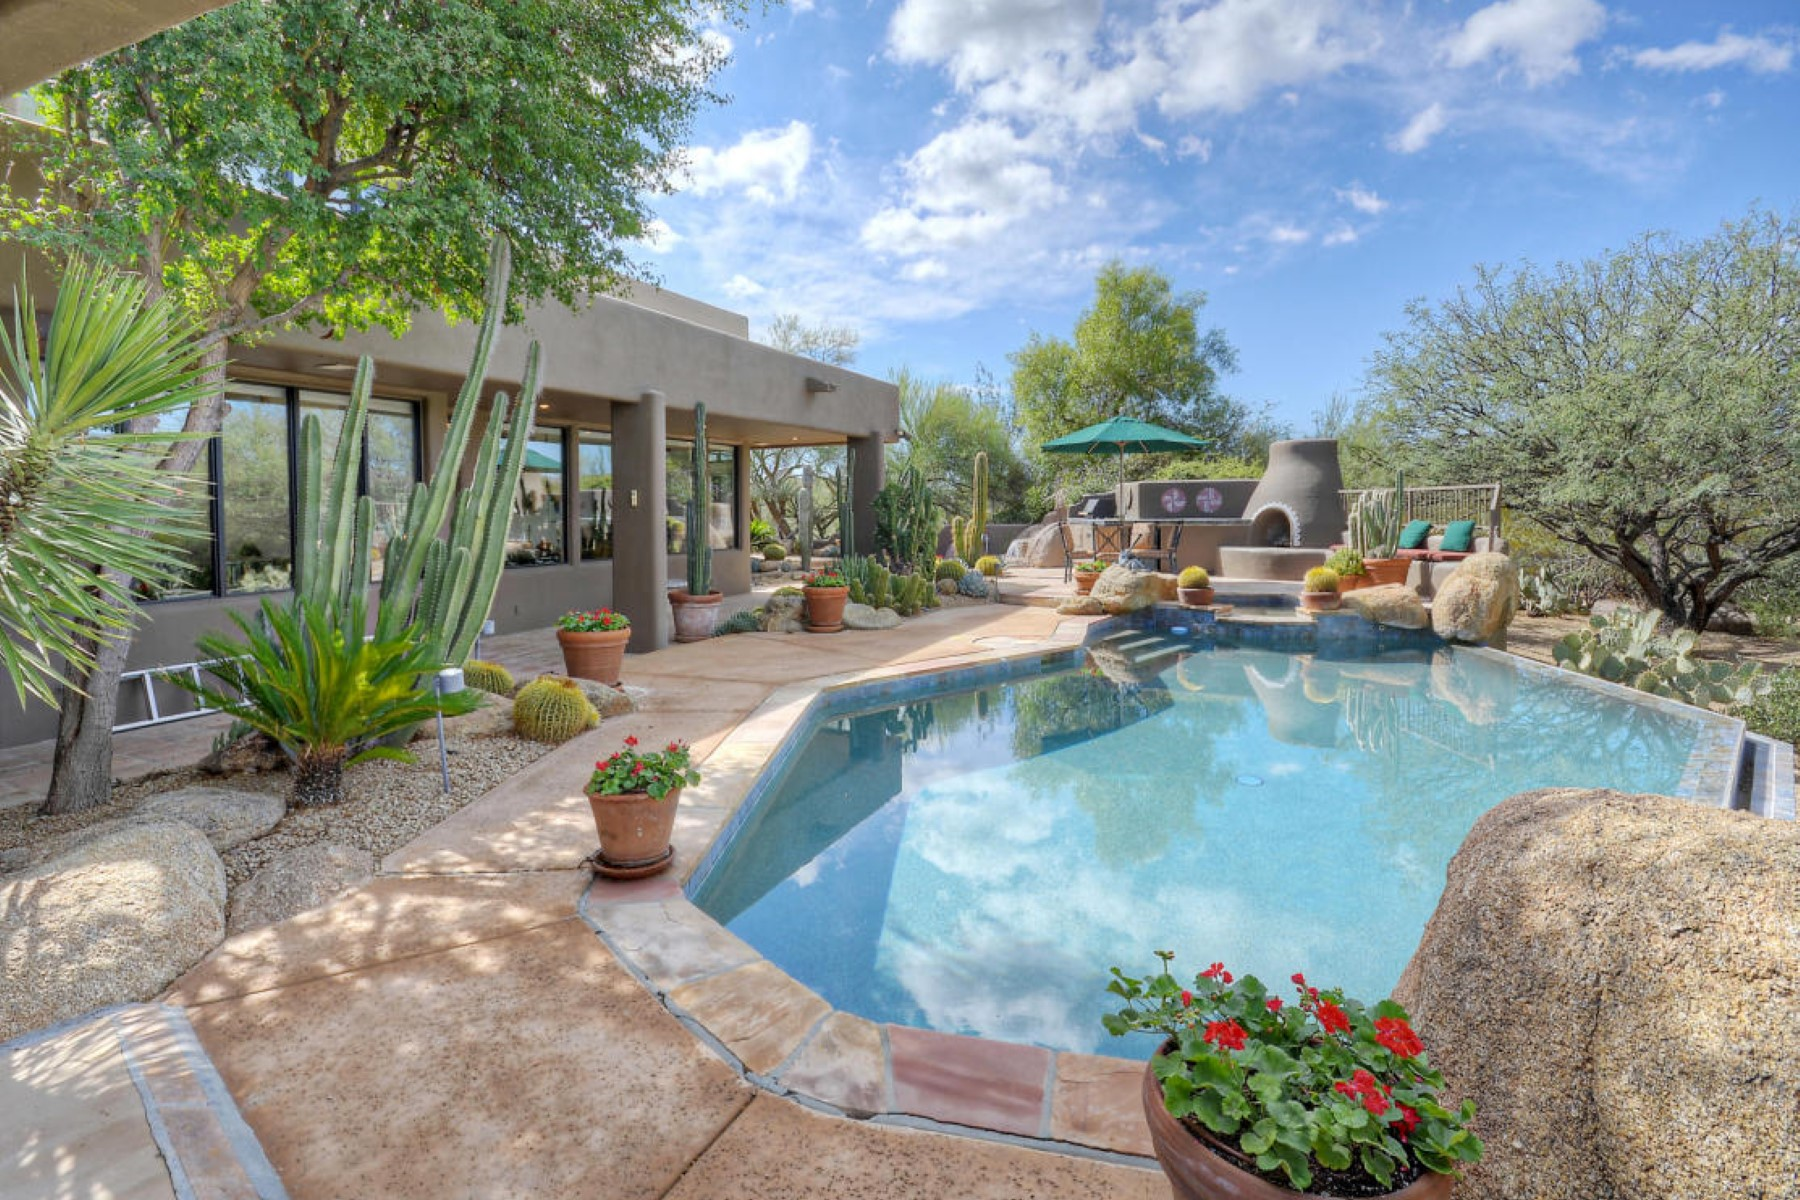 Single Family Home for Sale at Charming Boulders home located on 17th fairway of the N course 34766 N Indian Camp Trl Scottsdale, Arizona, 85266 United States